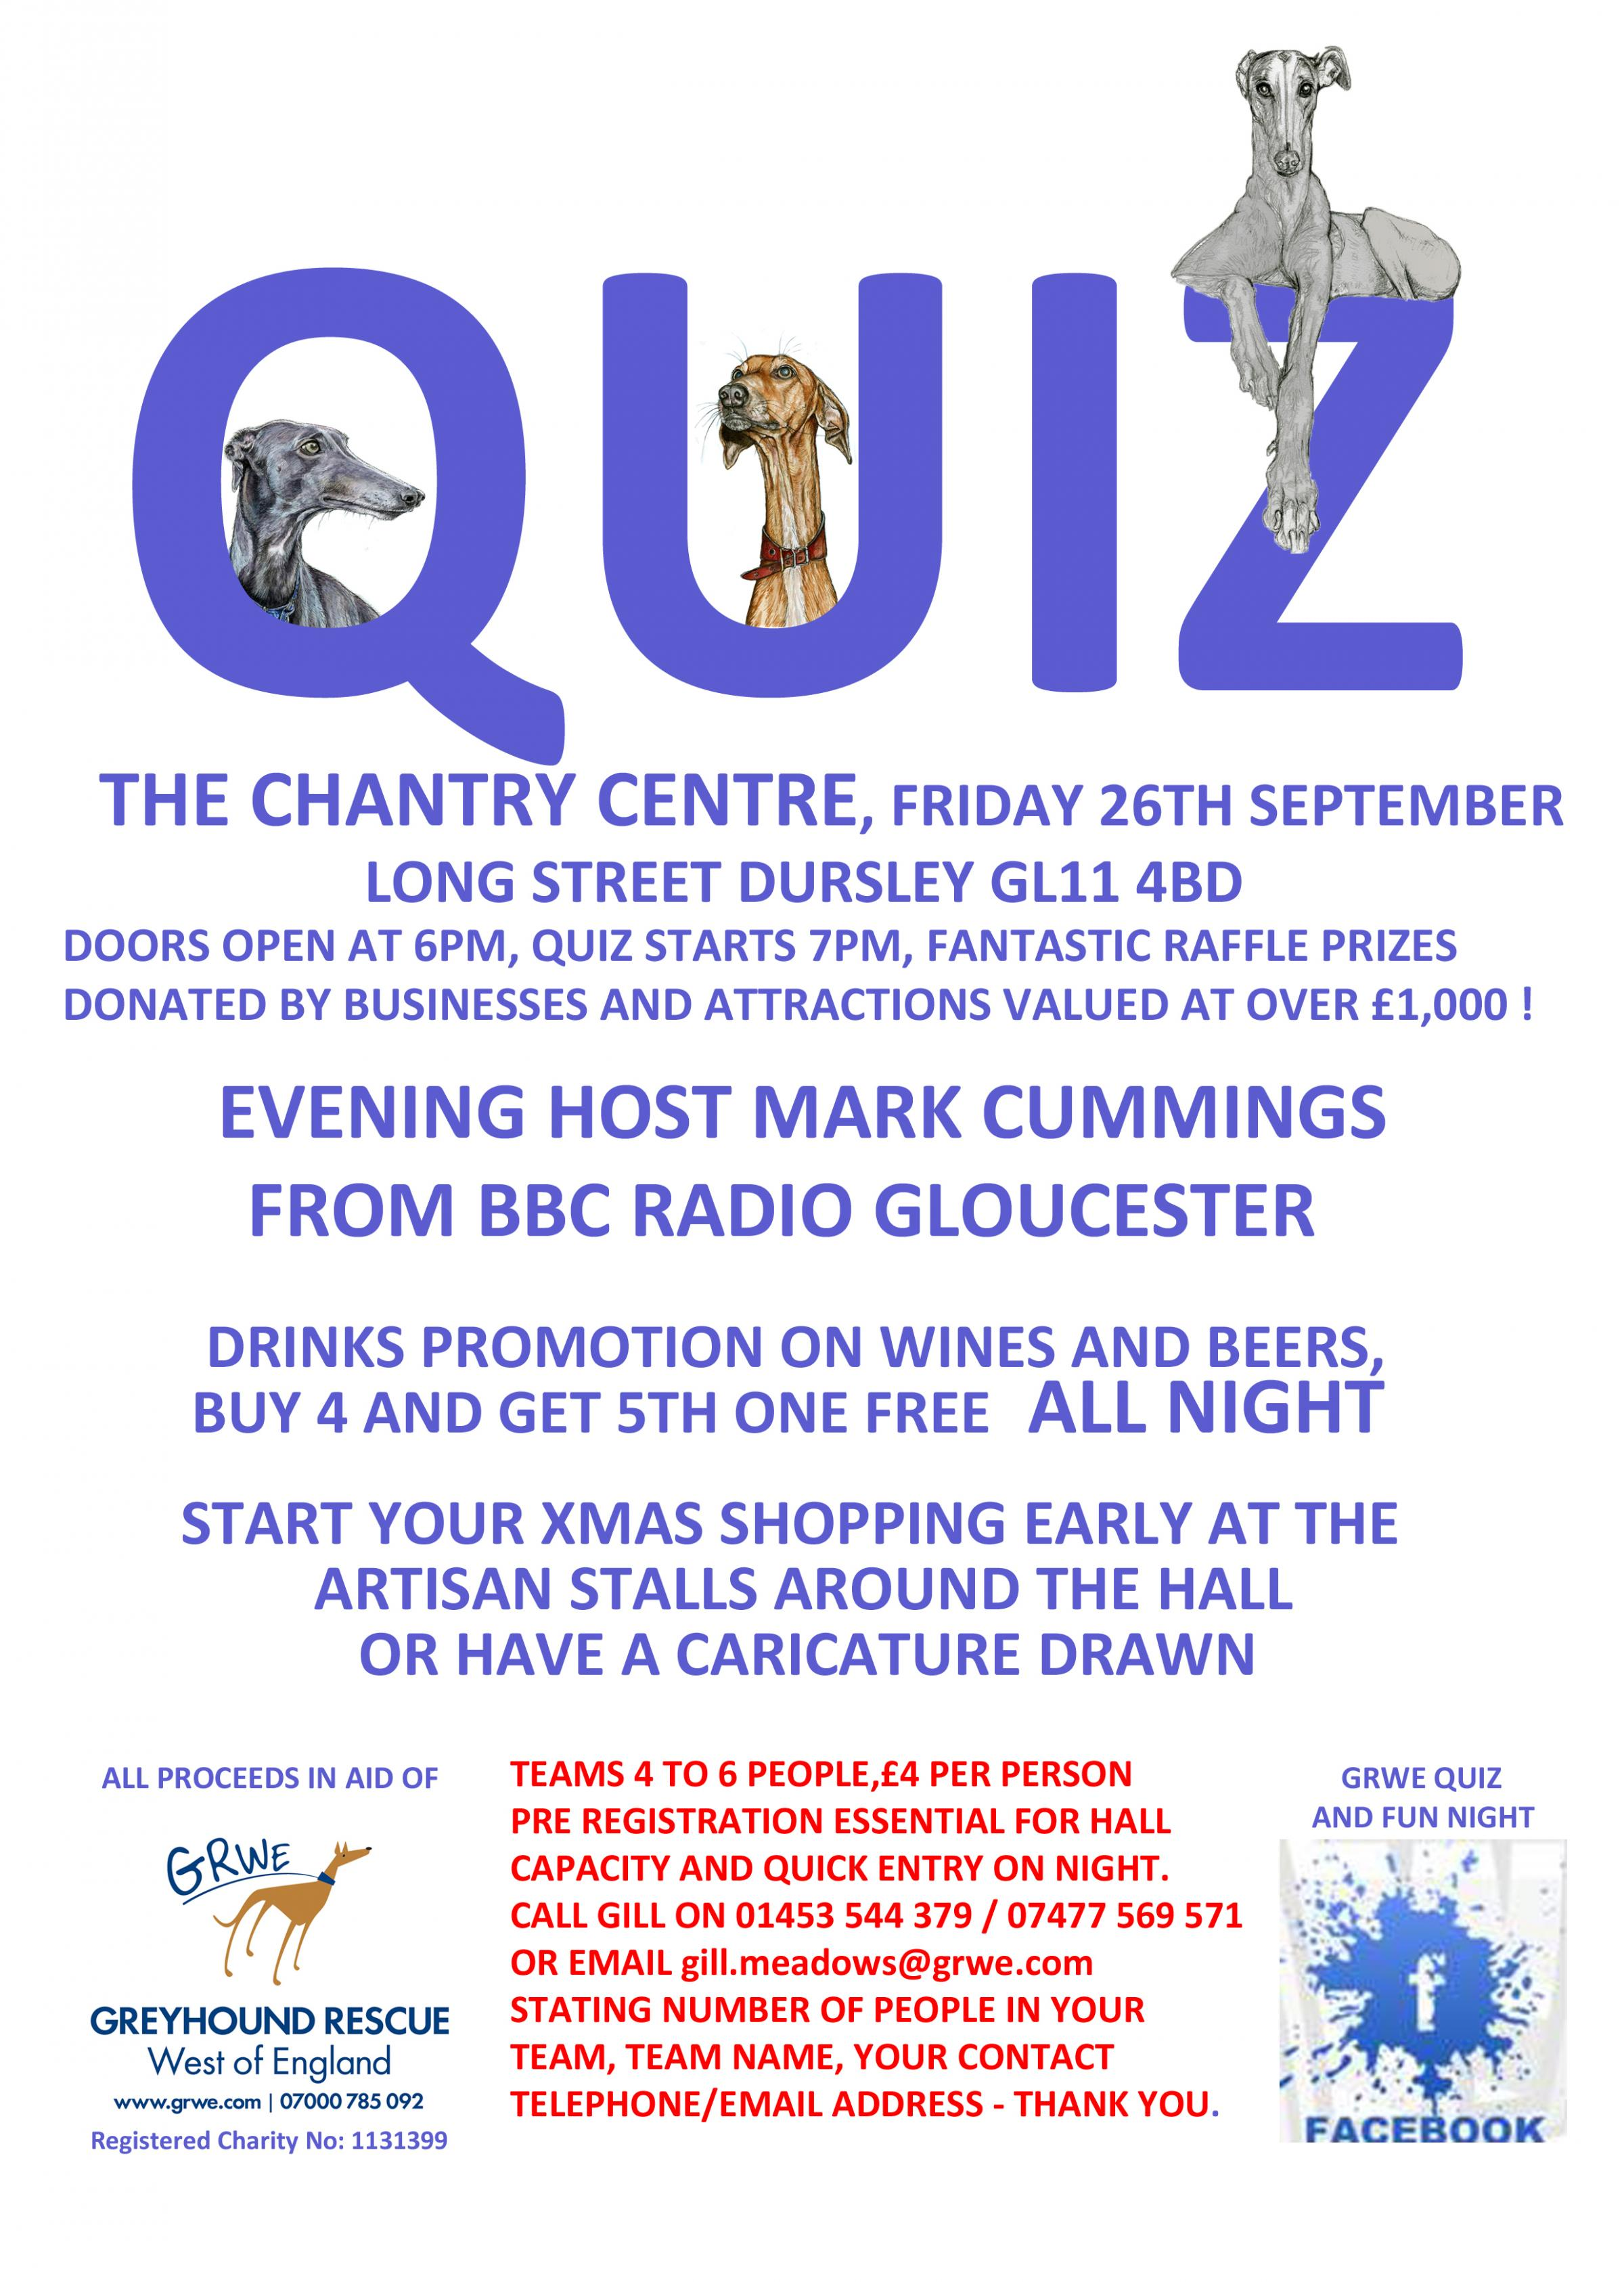 Dursley quiz night to raise money for greyhound charity